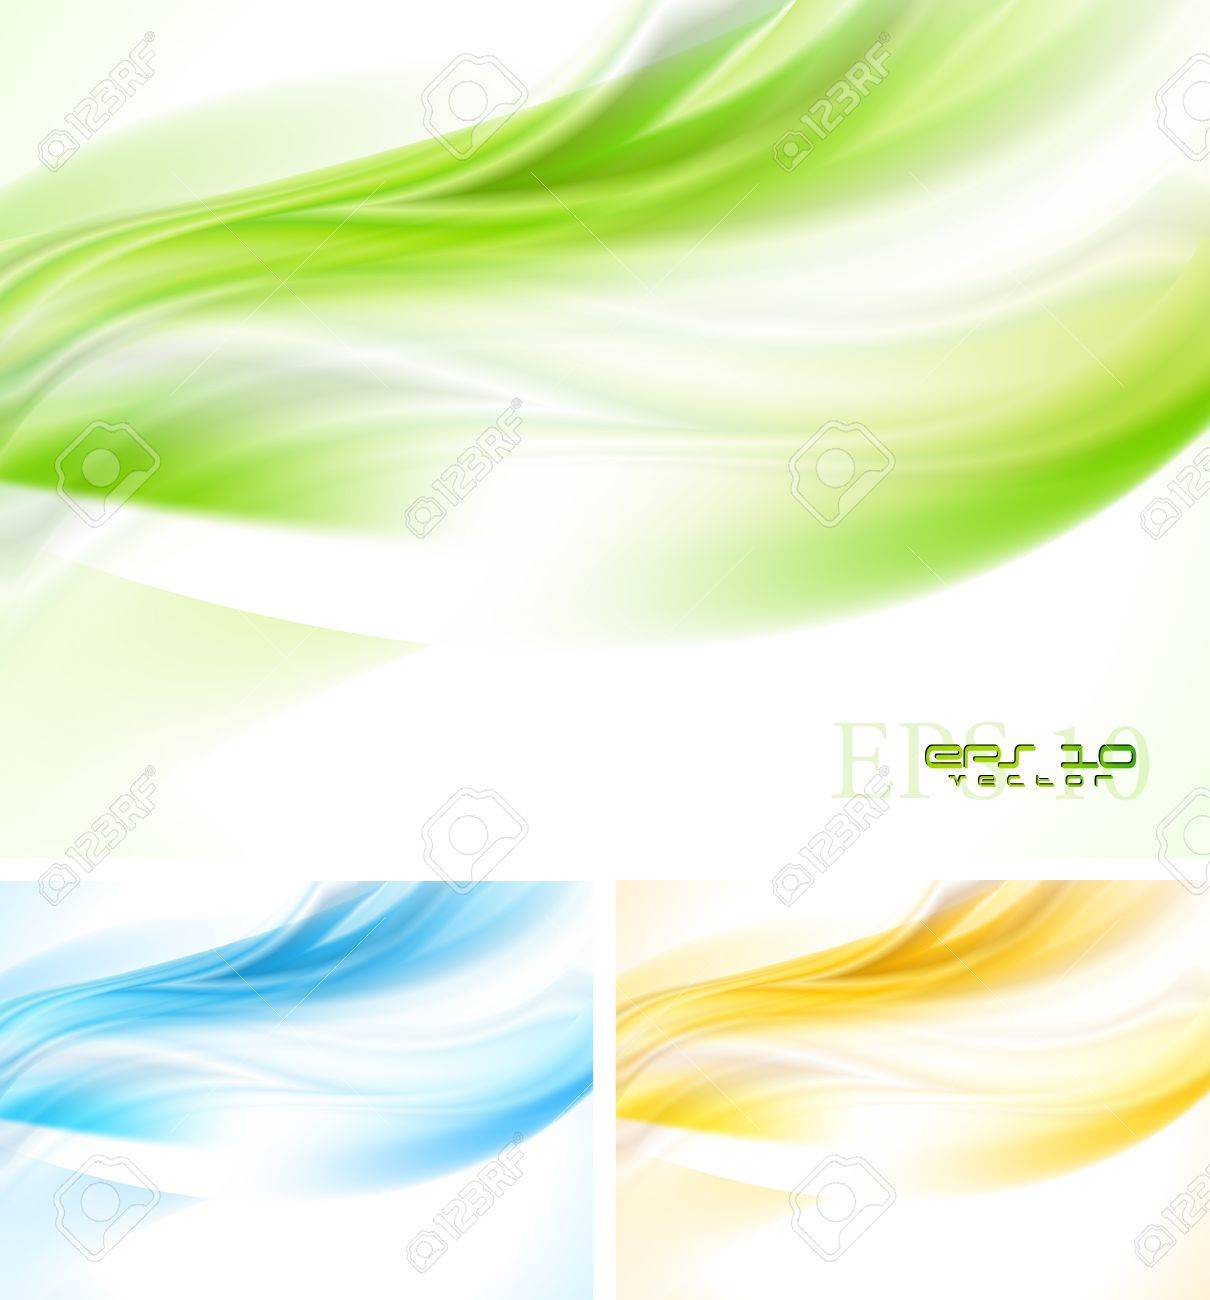 Bright wave backgrounds. Stock Vector - 14158886